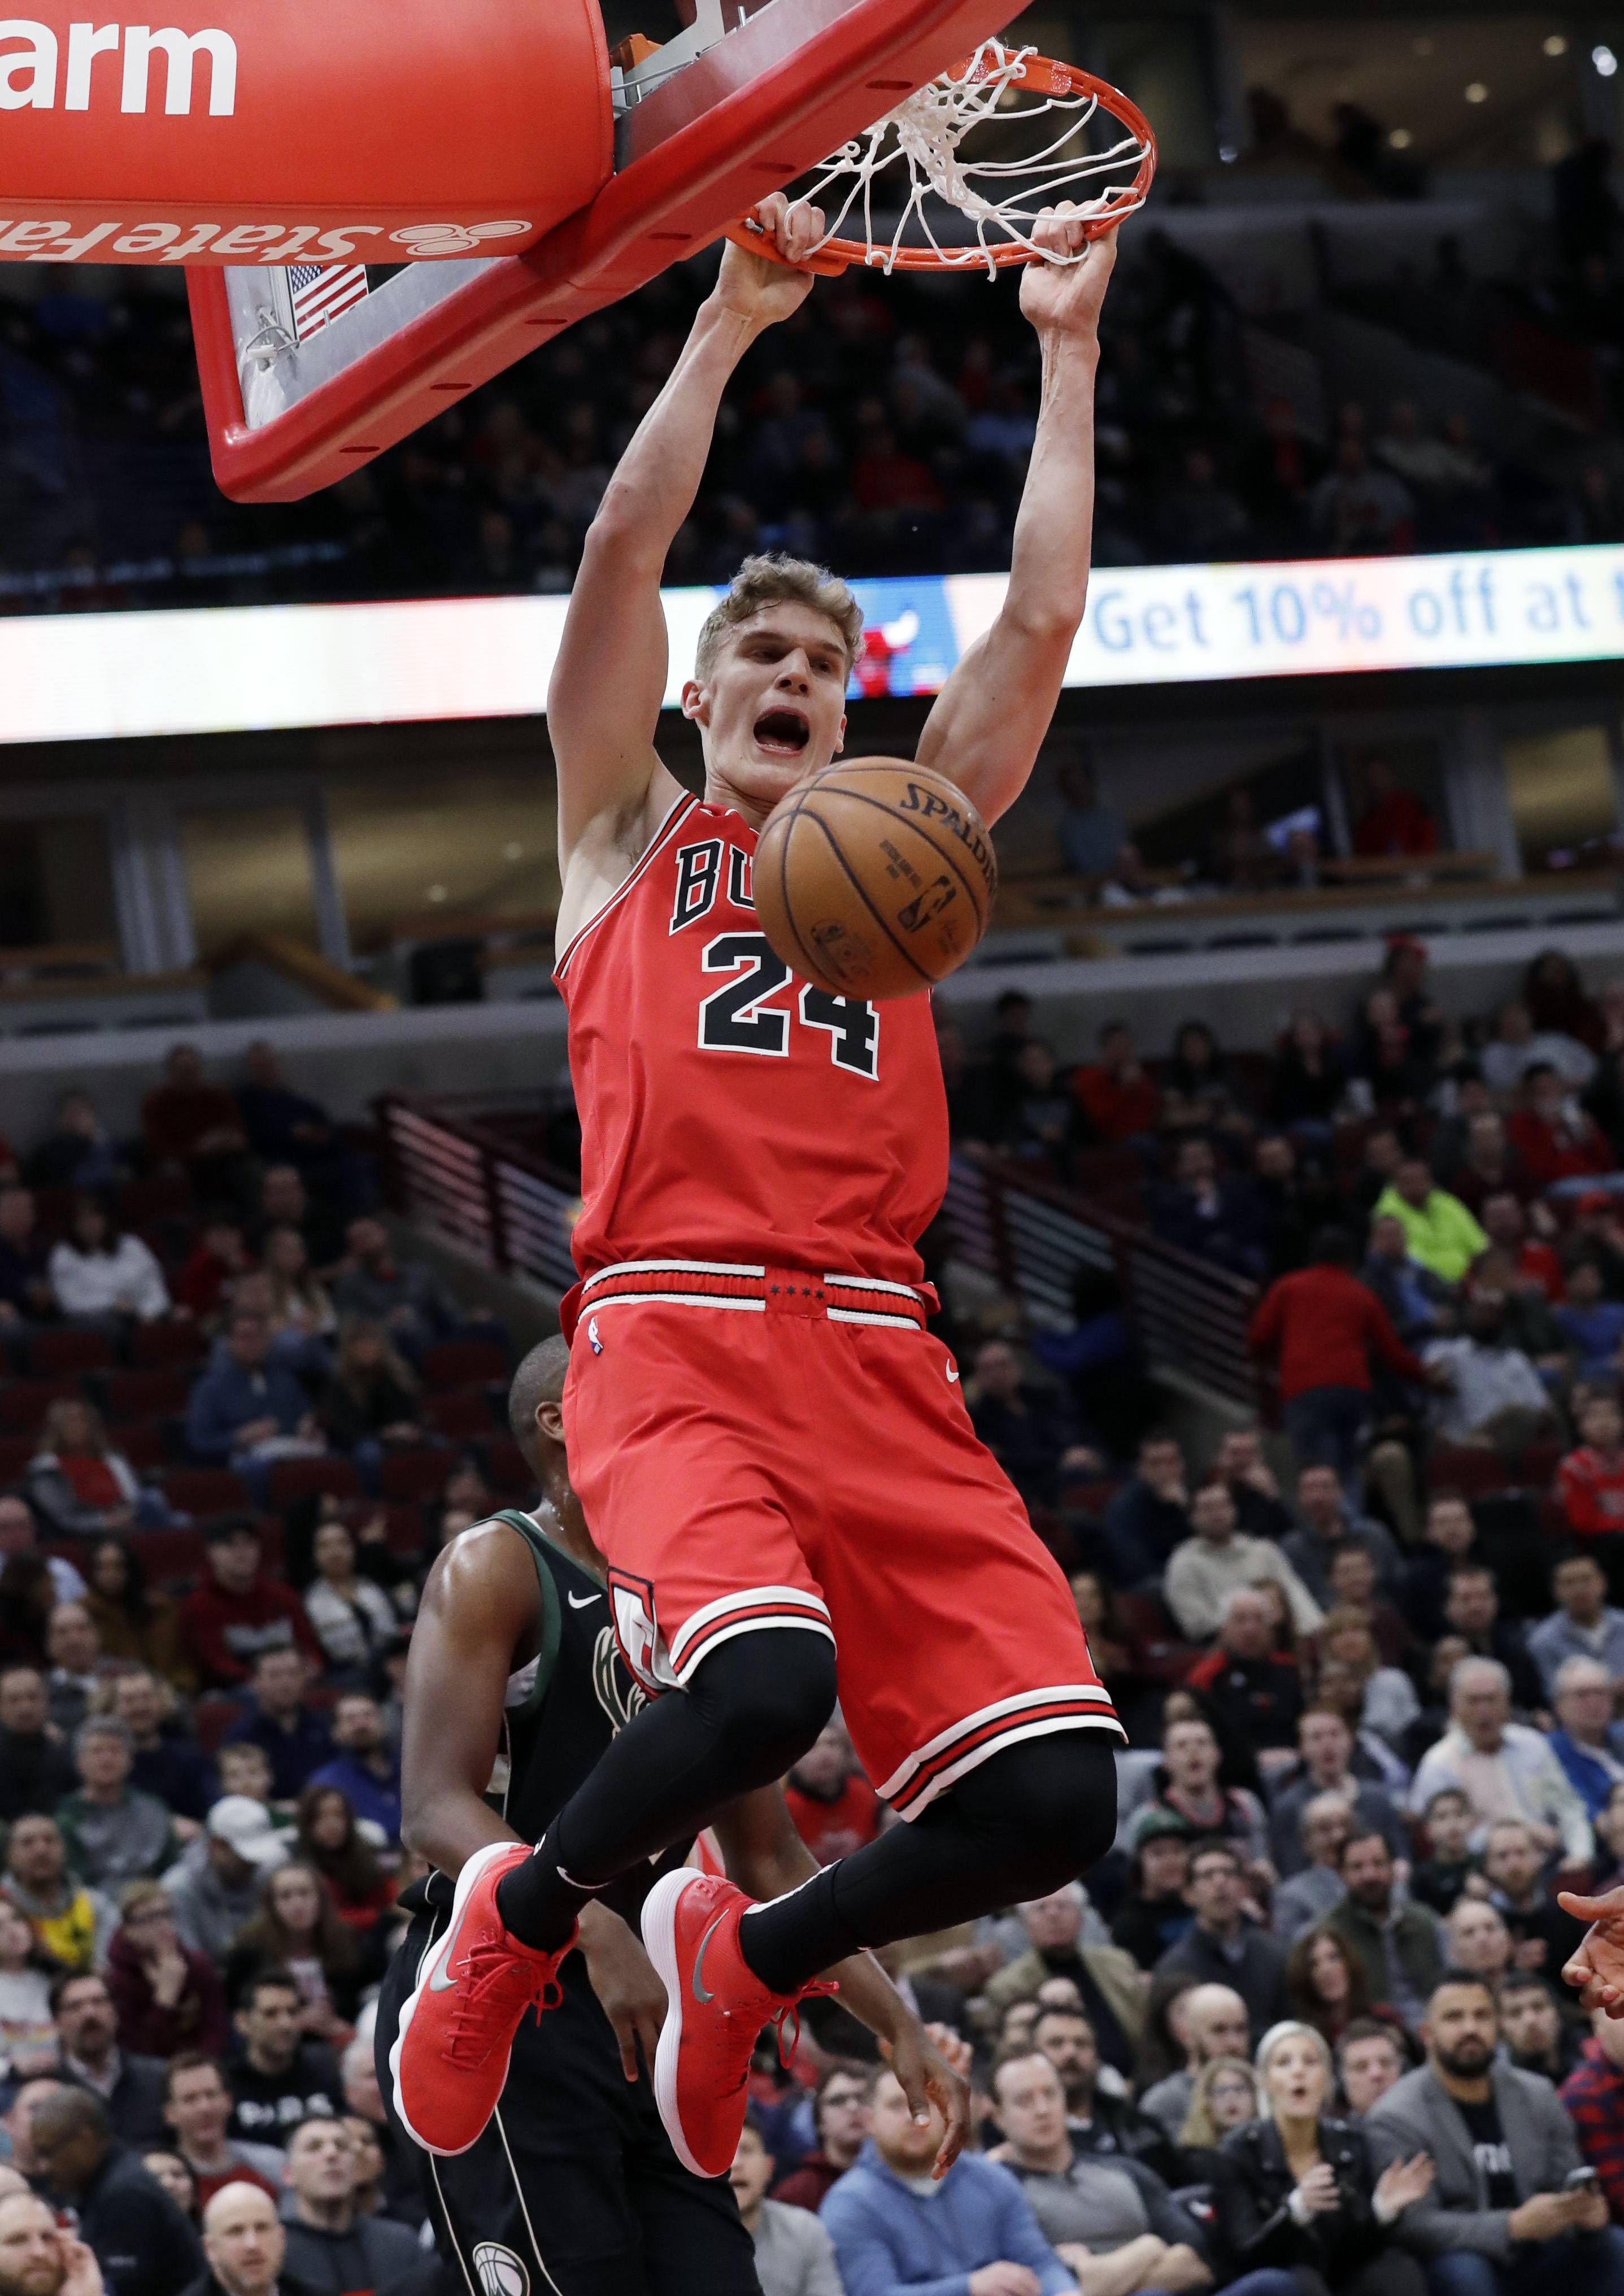 Bulls forward Lauri Markkanen has played lights out after missing the first 23 games of the season.